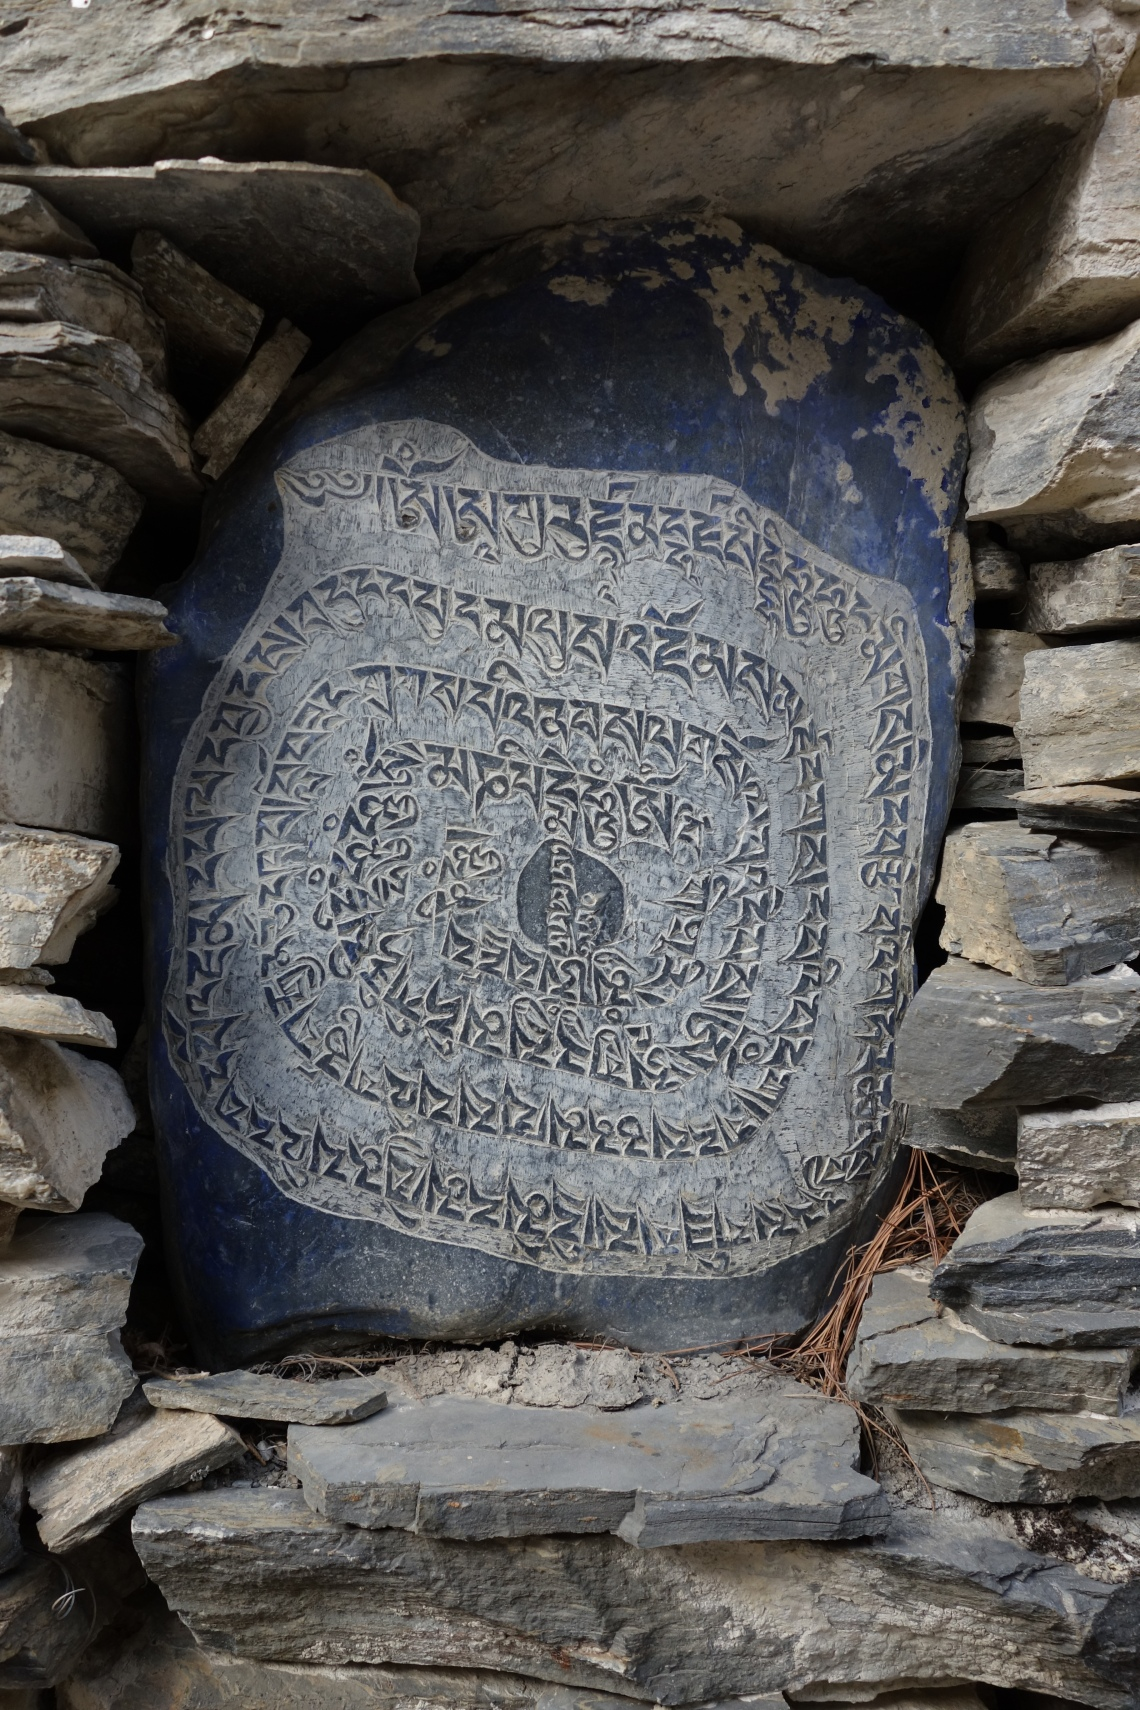 annapurna circuit mani wall nepal travel blog buddhism (3)